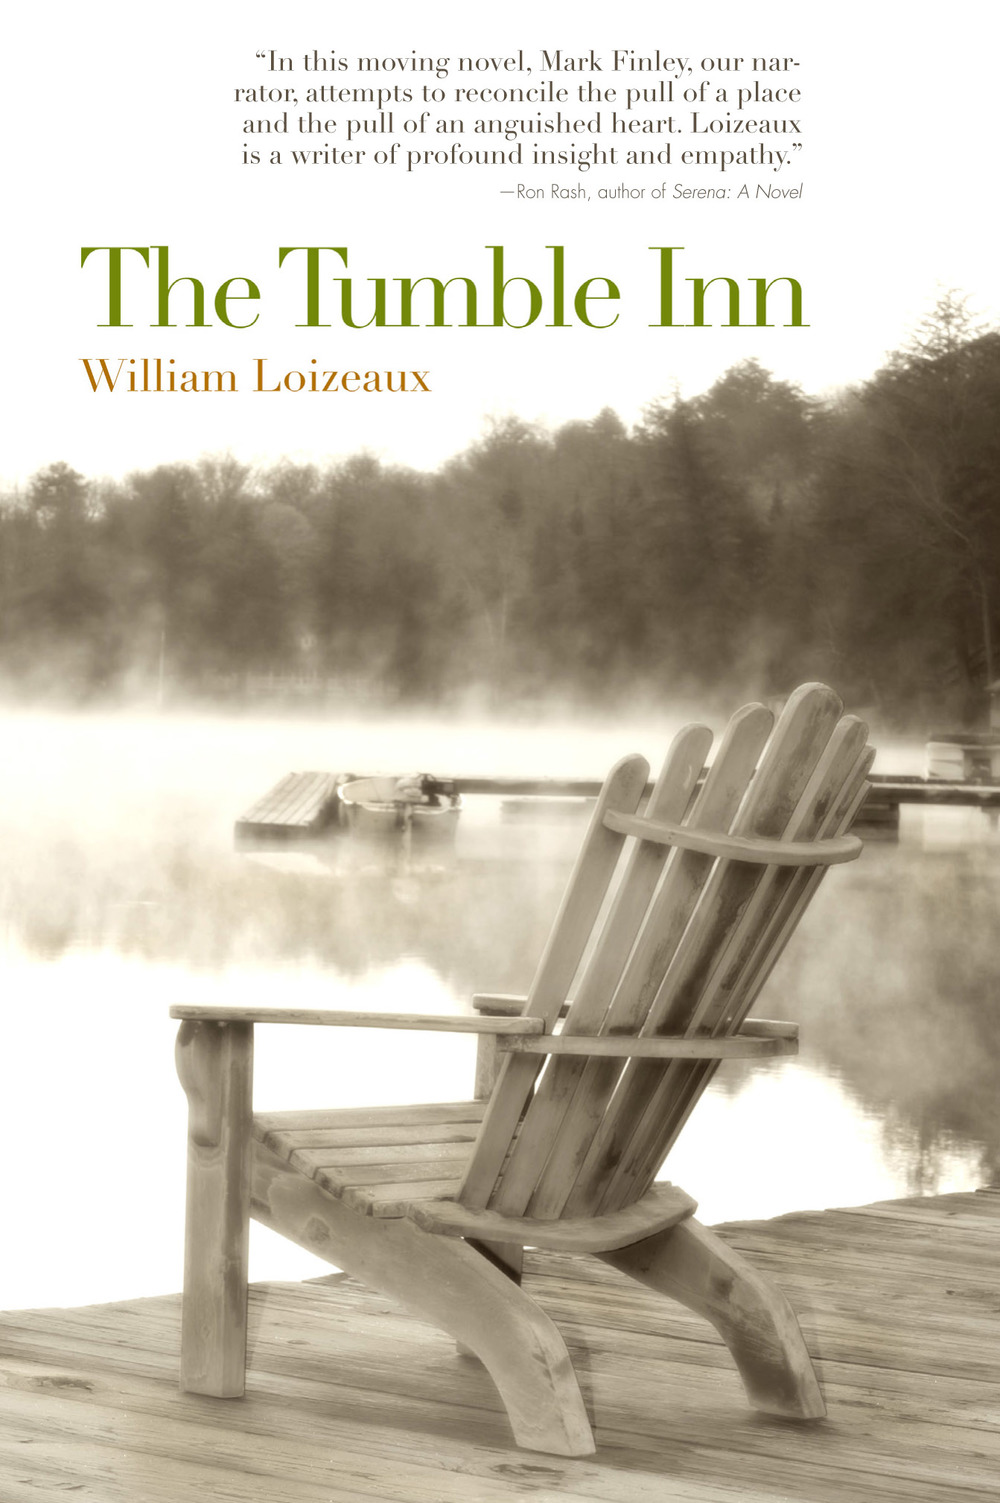 The Tumble Inn